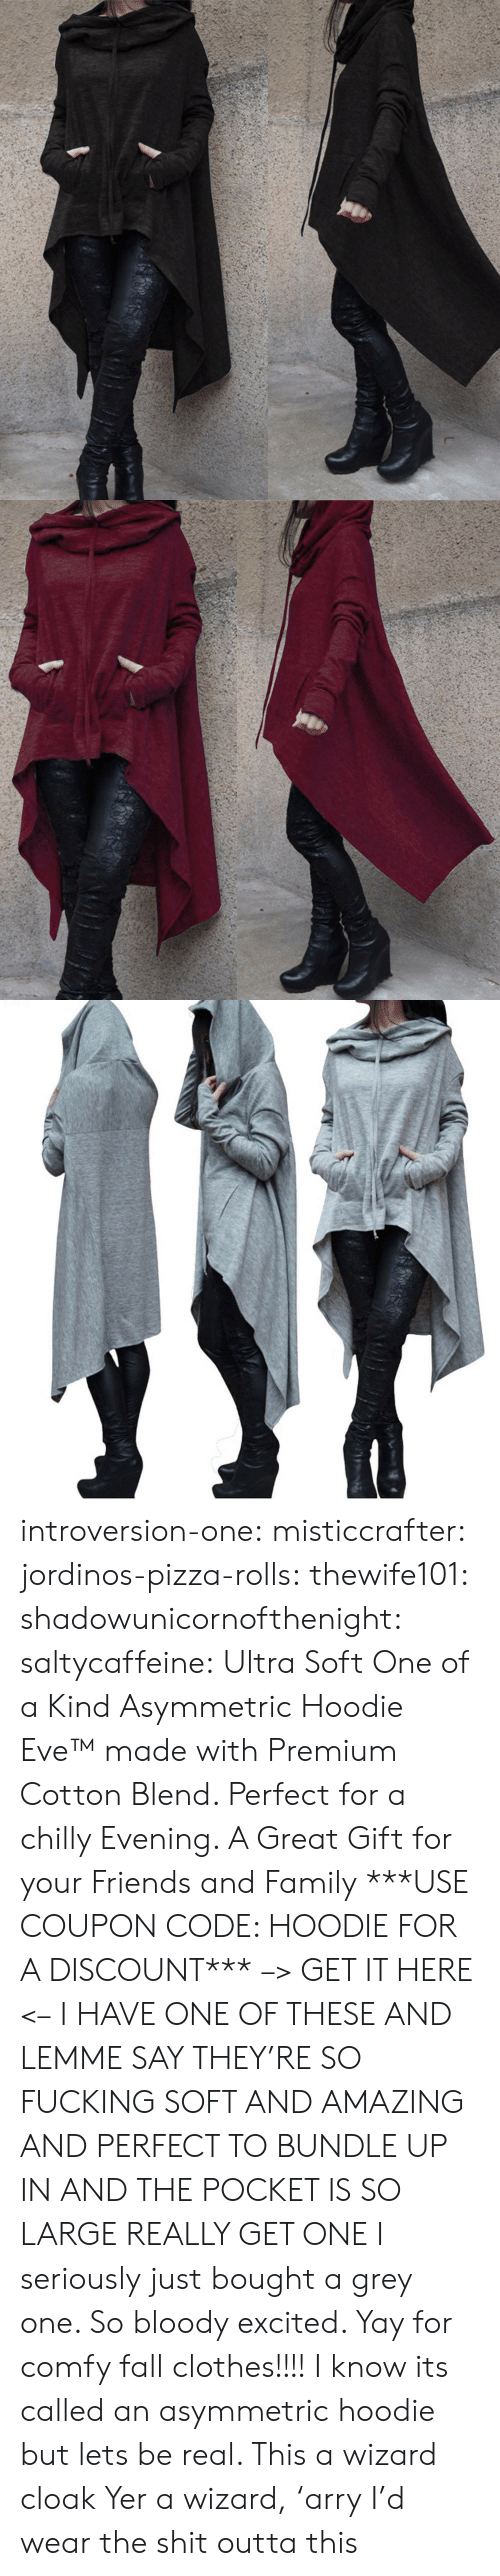 Clothes, Fall, and Family: introversion-one:  misticcrafter:  jordinos-pizza-rolls:  thewife101:  shadowunicornofthenight:  saltycaffeine:  Ultra Soft One of a Kind Asymmetric Hoodie Eve™made with Premium Cotton Blend. Perfect for a chilly Evening. A Great Gift for your Friends and Family ***USE COUPON CODE: HOODIE FOR A DISCOUNT*** –> GET IT HERE <–   I HAVE ONE OF THESE AND LEMME SAY THEY'RE SO FUCKING SOFT AND AMAZING AND PERFECT TO BUNDLE UP IN AND THE POCKET IS SO LARGE REALLY GET ONE   I seriously just bought a grey one. So bloody excited. Yay for comfy fall clothes!!!!    I know its called an asymmetric hoodie but lets be real. This a wizard cloak  Yer a wizard,'arry   I'd wear the shit outta this